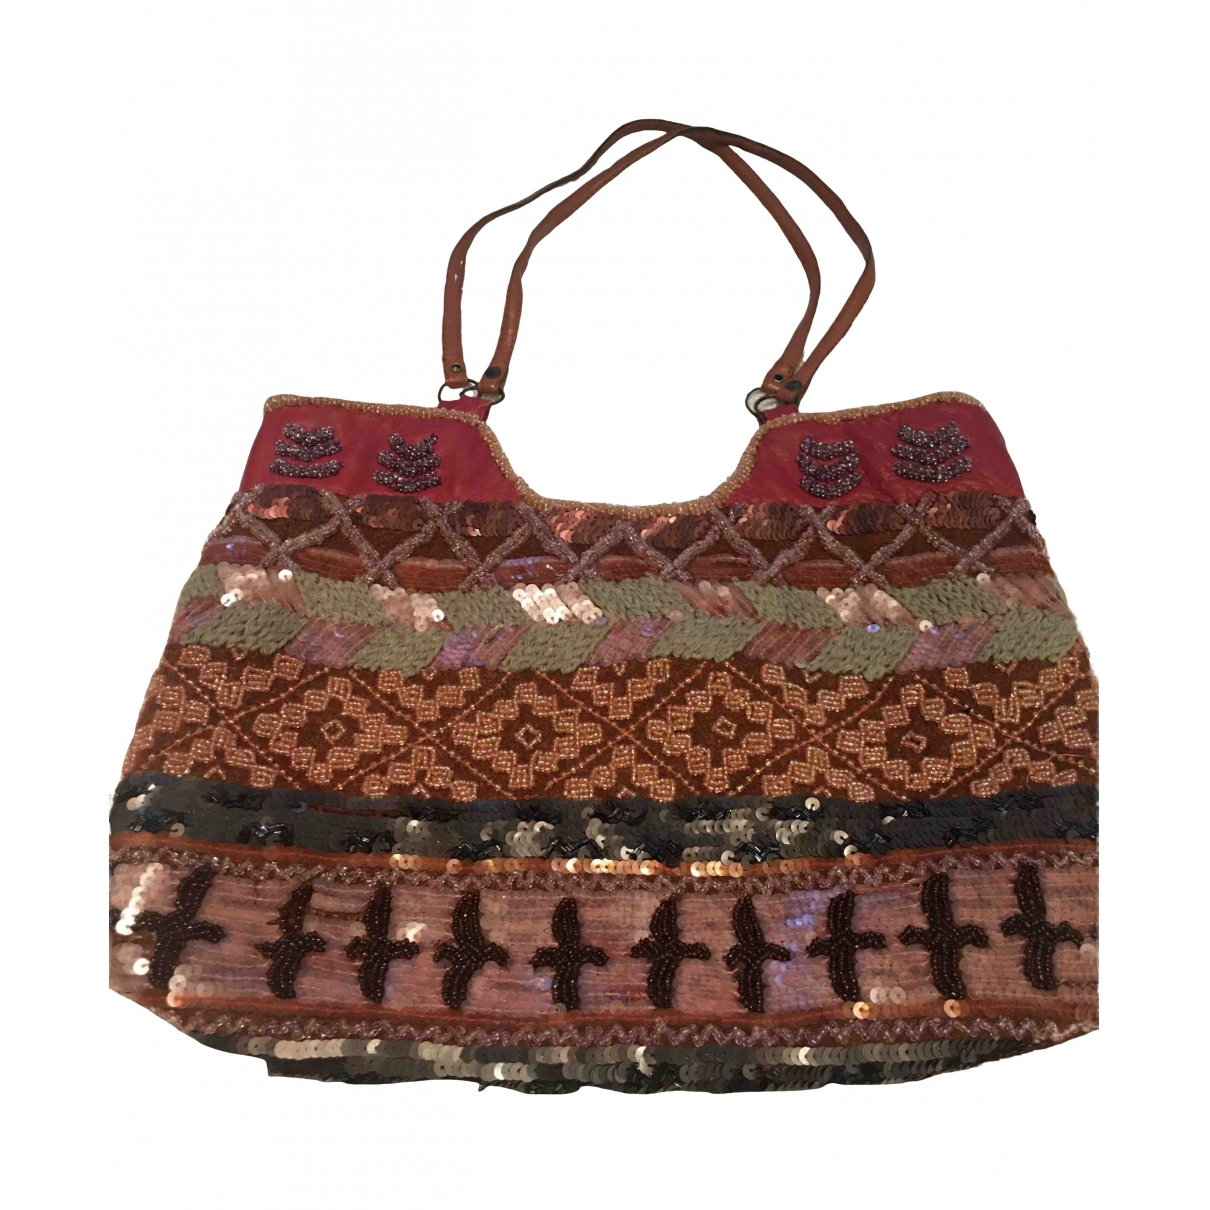 Jamin Puech \N Burgundy Glitter handbag for Women \N